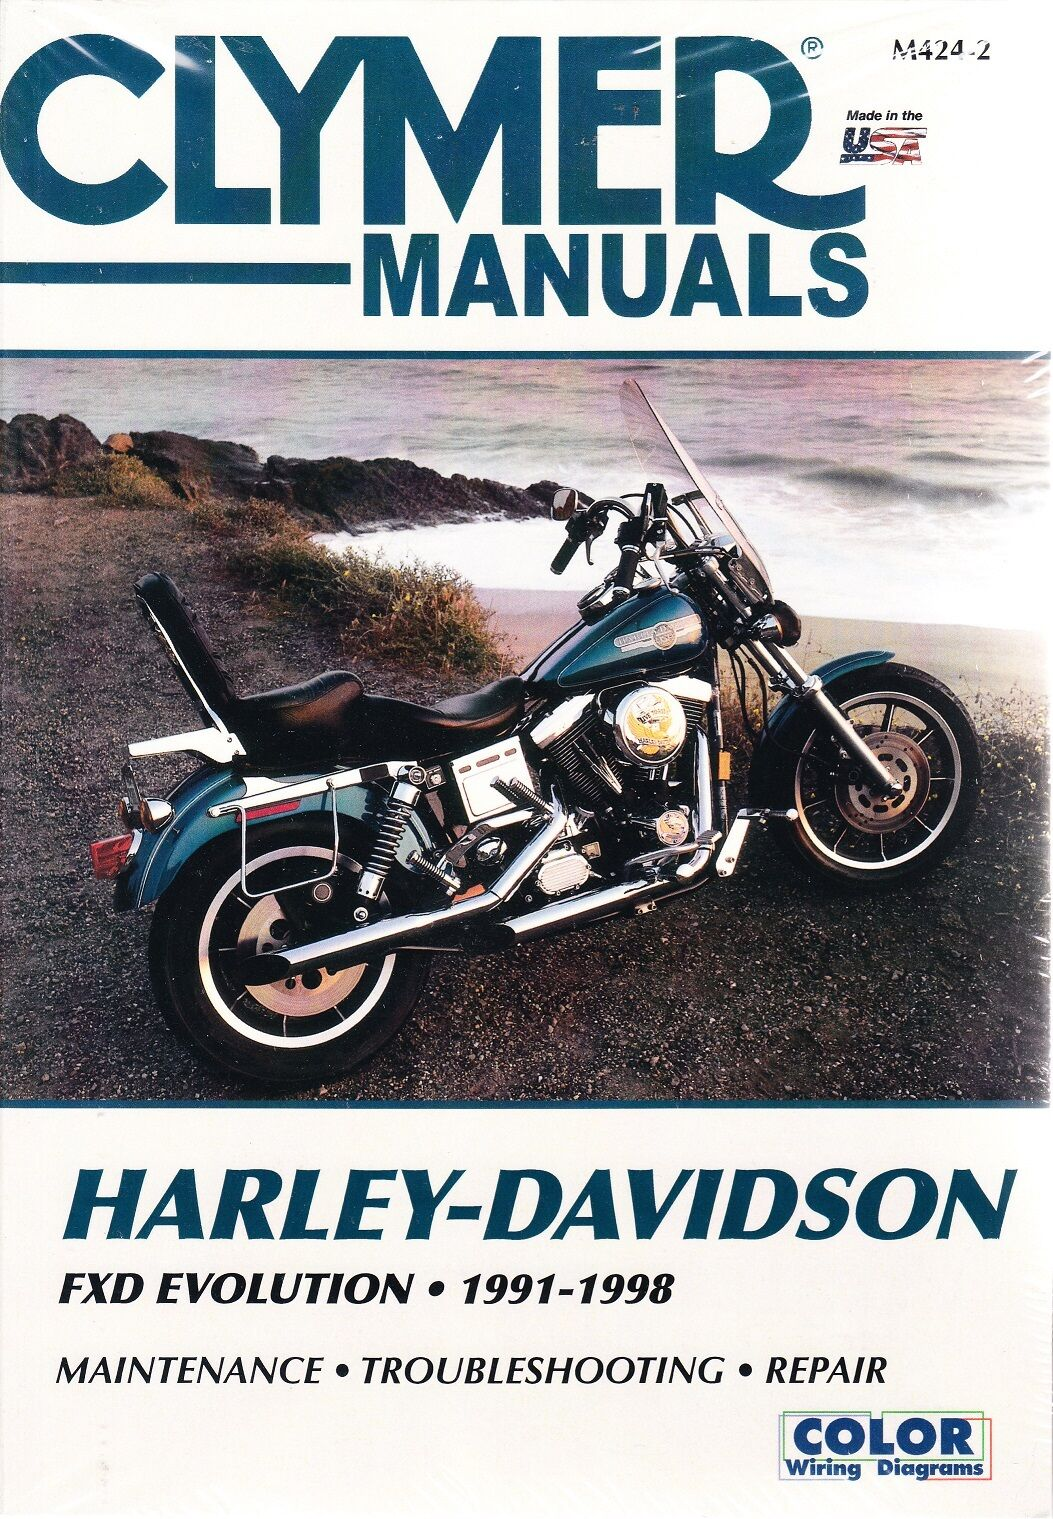 1991-1998 Harley FXD Wide Glide Dyna Low Rider Repair Service Shop Manual  M4242 1 of 1FREE Shipping See More